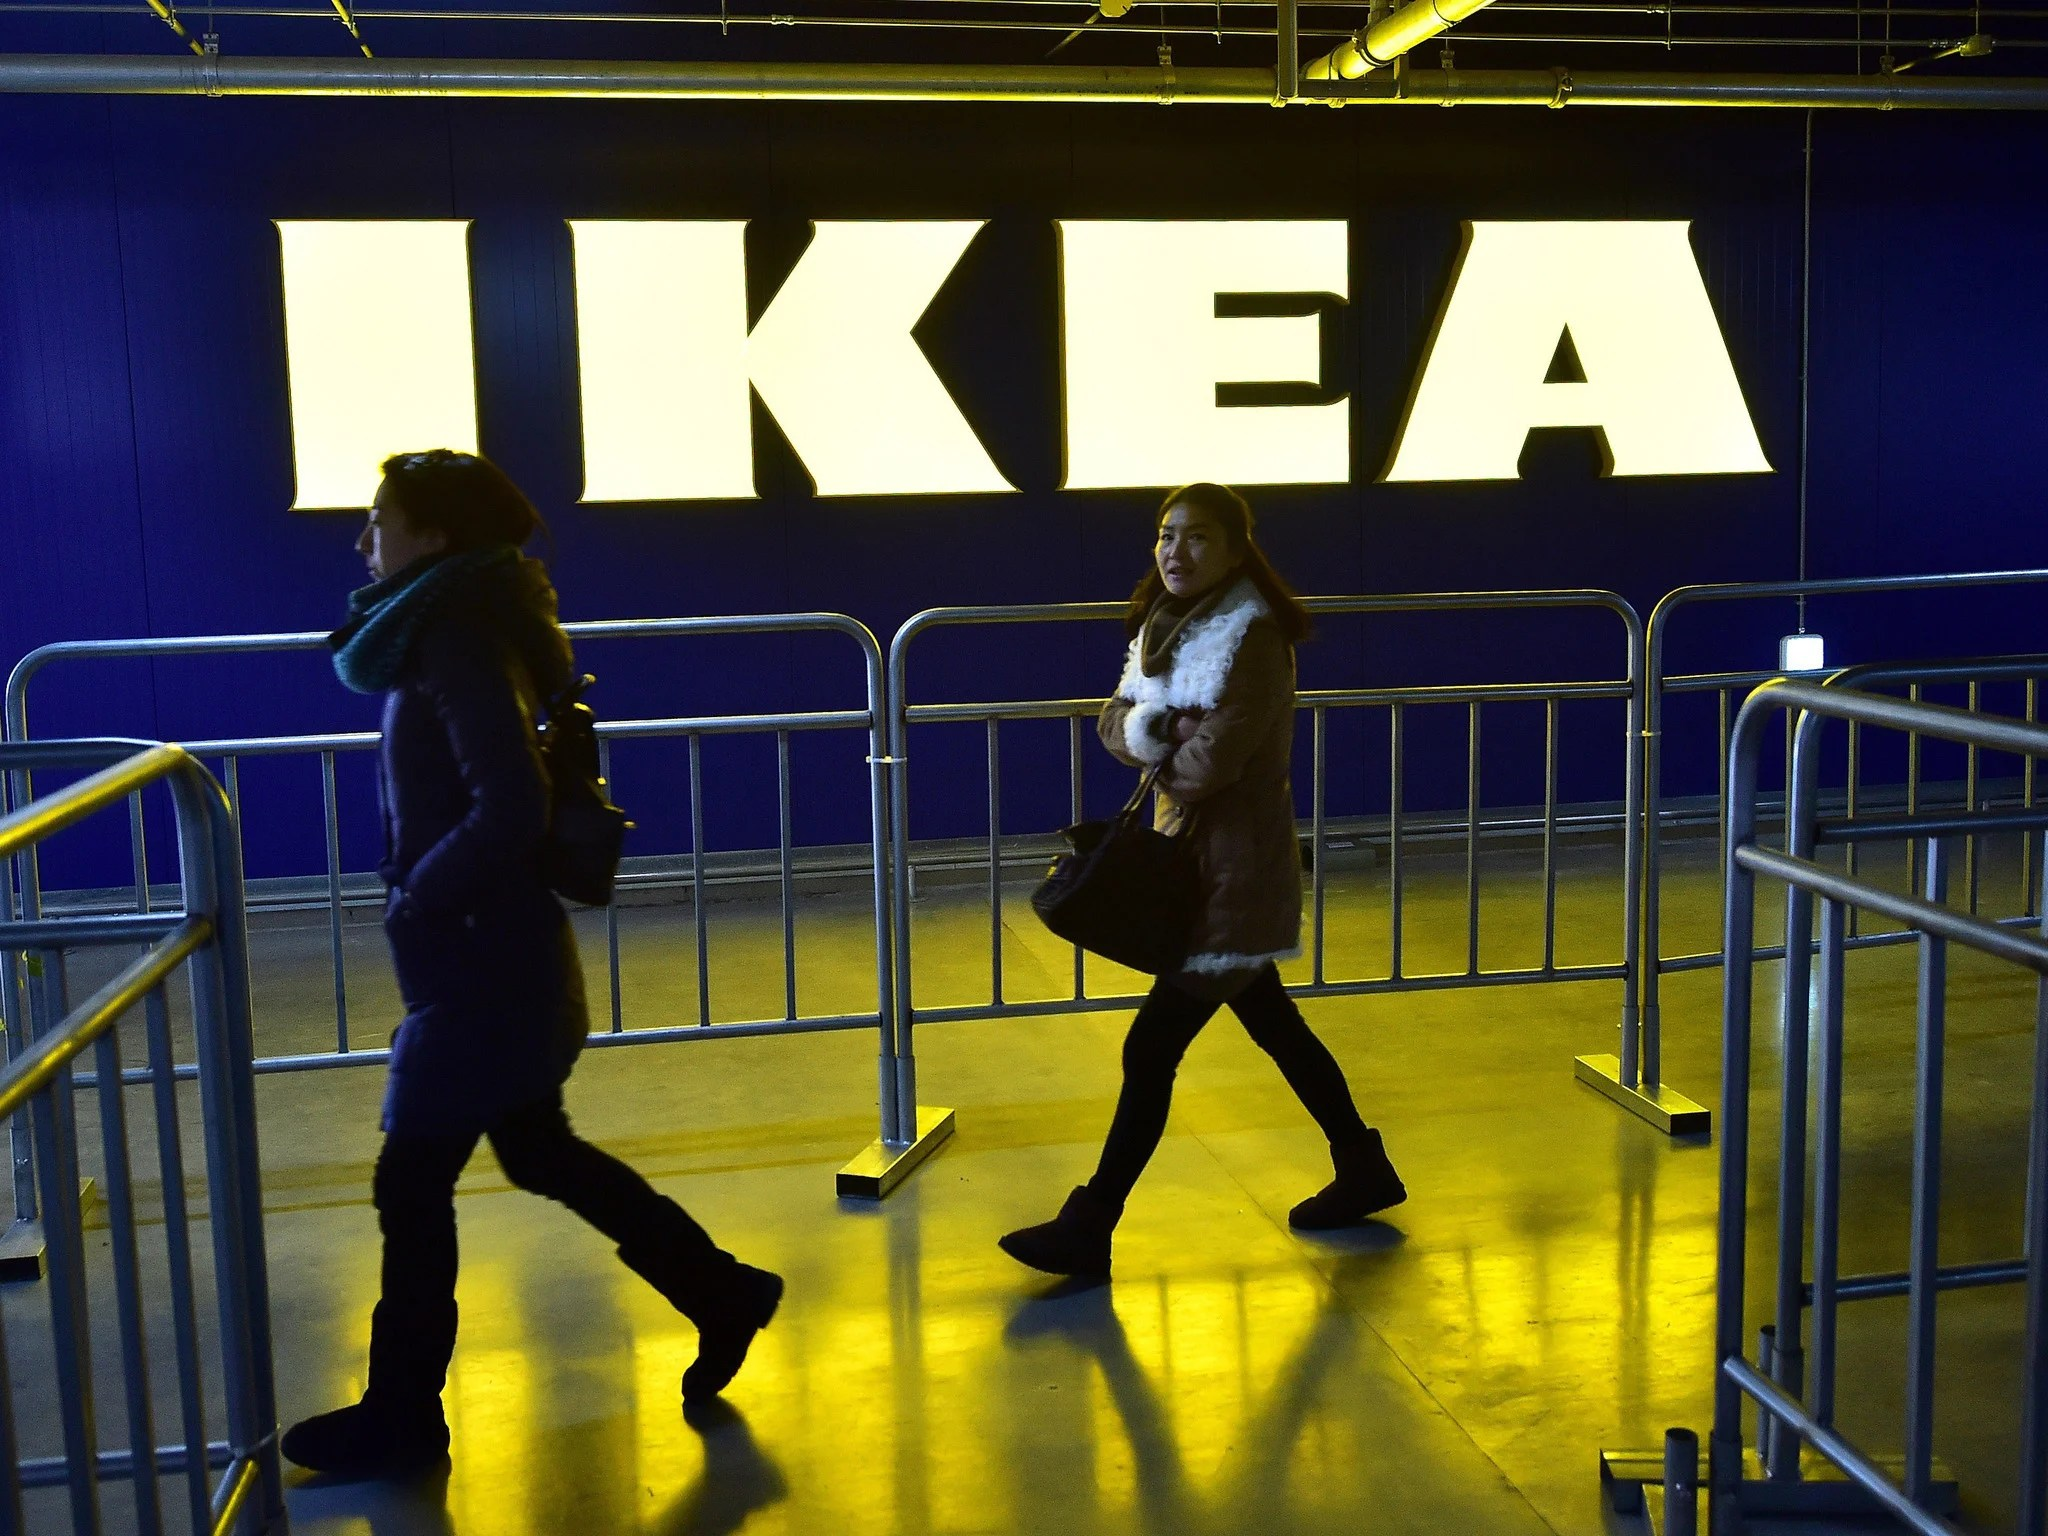 Bad Ikea Expert Confirms What We All Know About Ikea It S Bad For